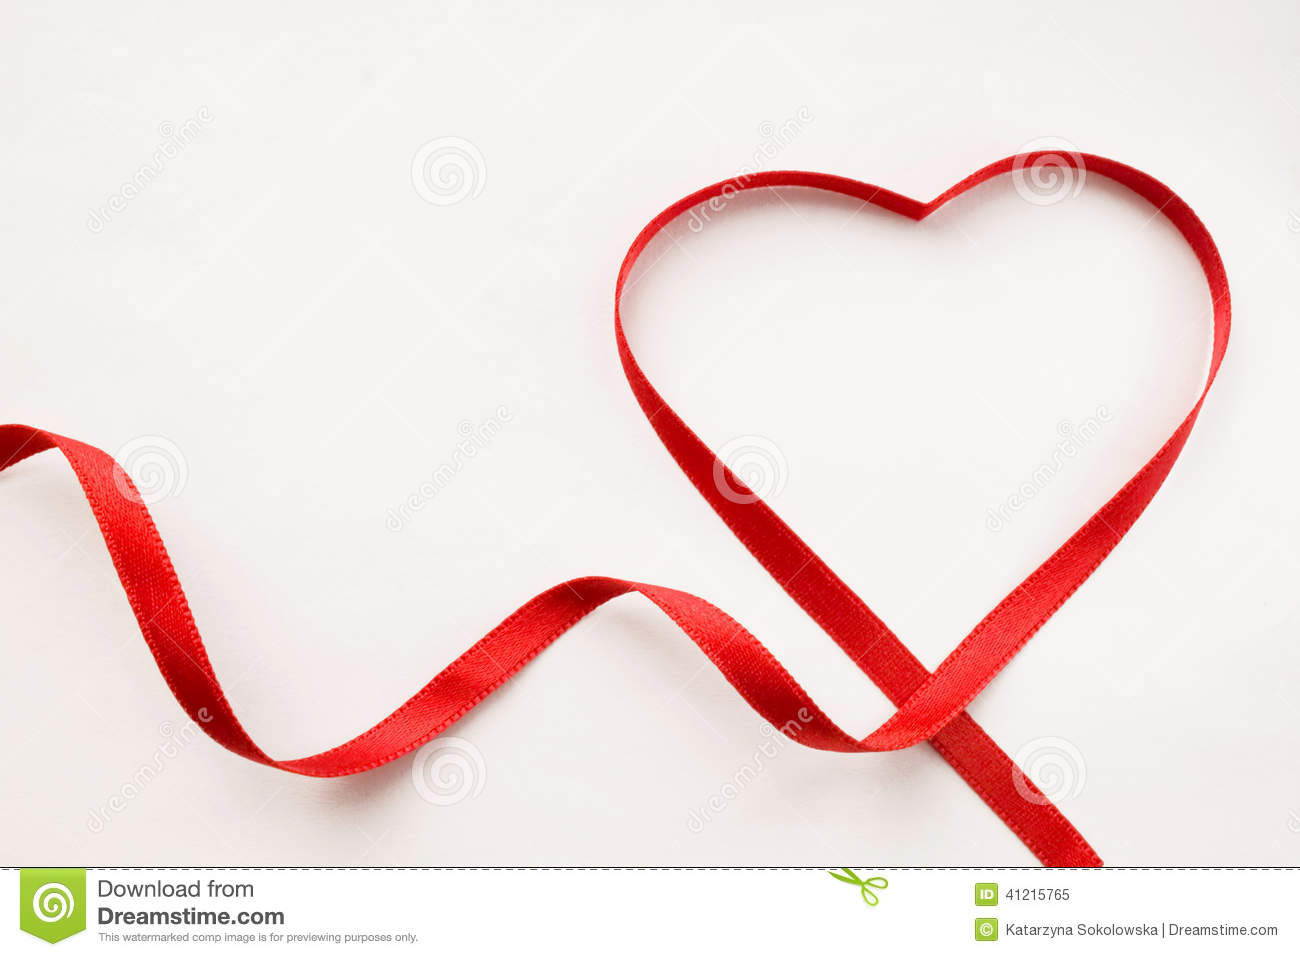 Ribbon heart